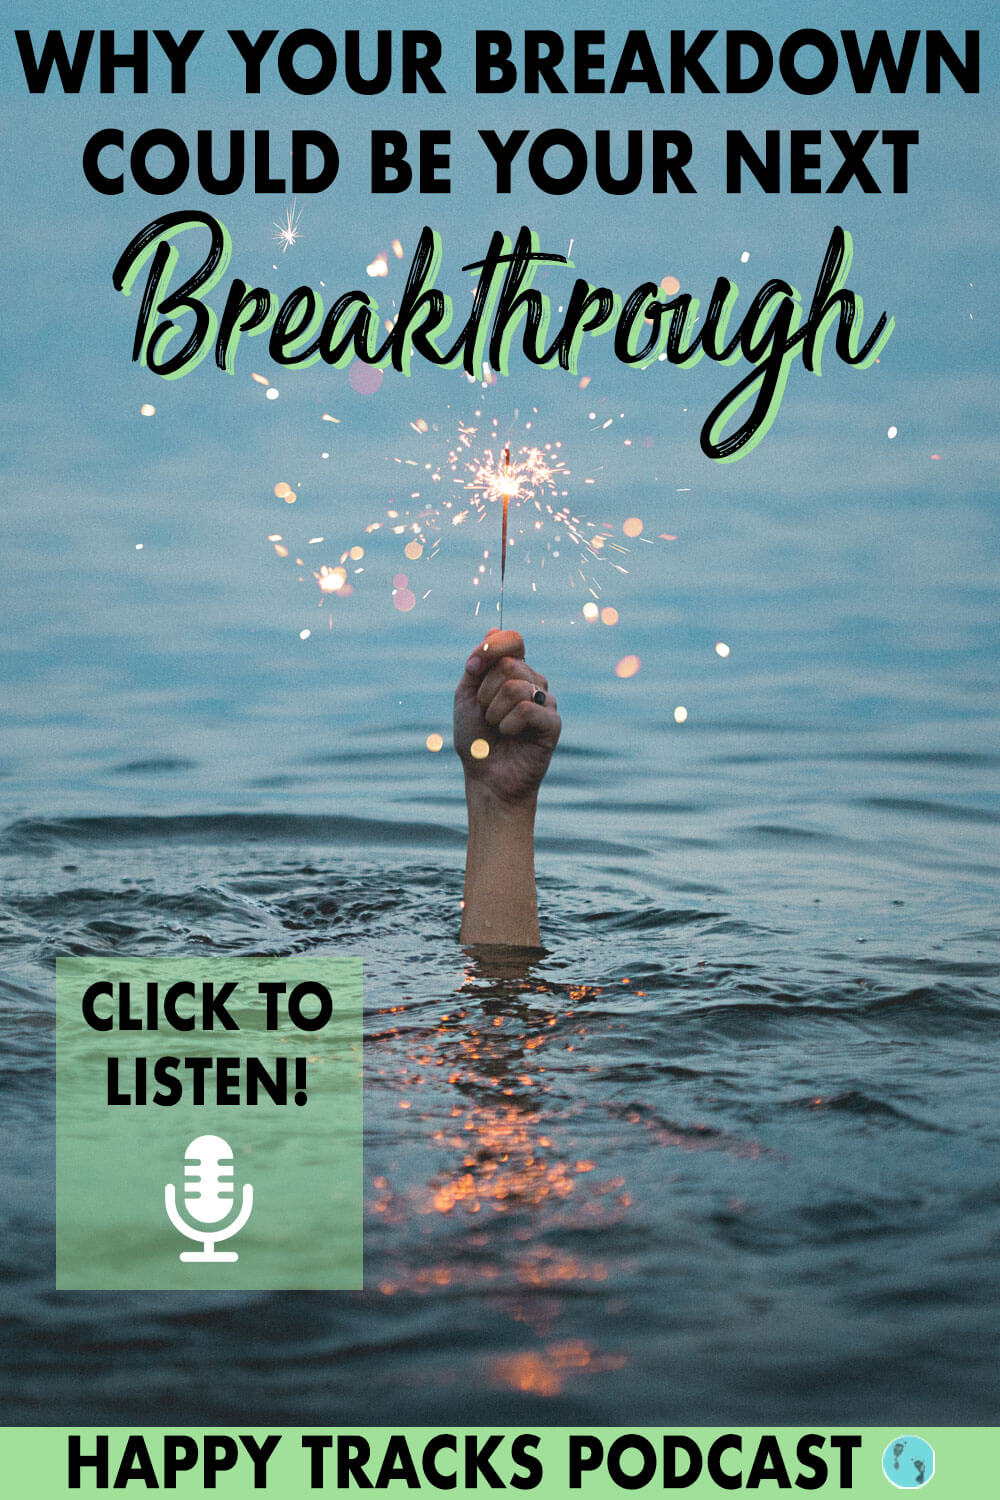 Breakdowns are not bad, they're just a signal to you that something needs to change. Click to listen to a podcast for women that will help to completely reframe how you look at your breakdowns - for the better.